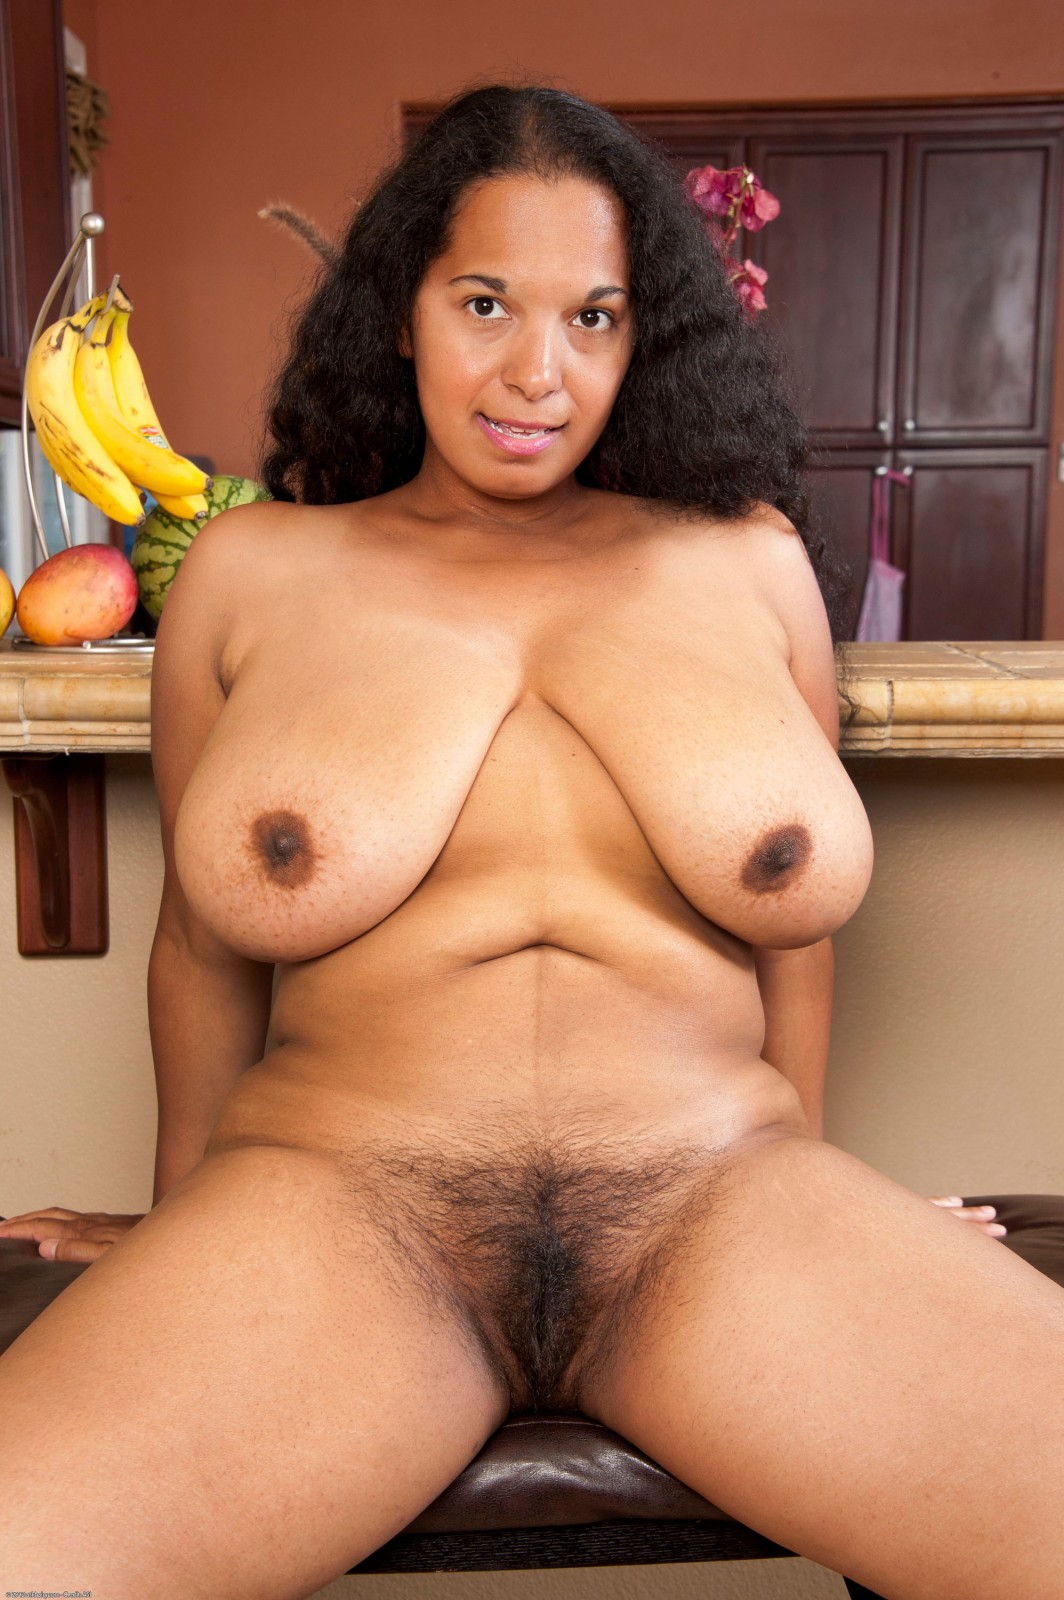 Chubby hairy ebony